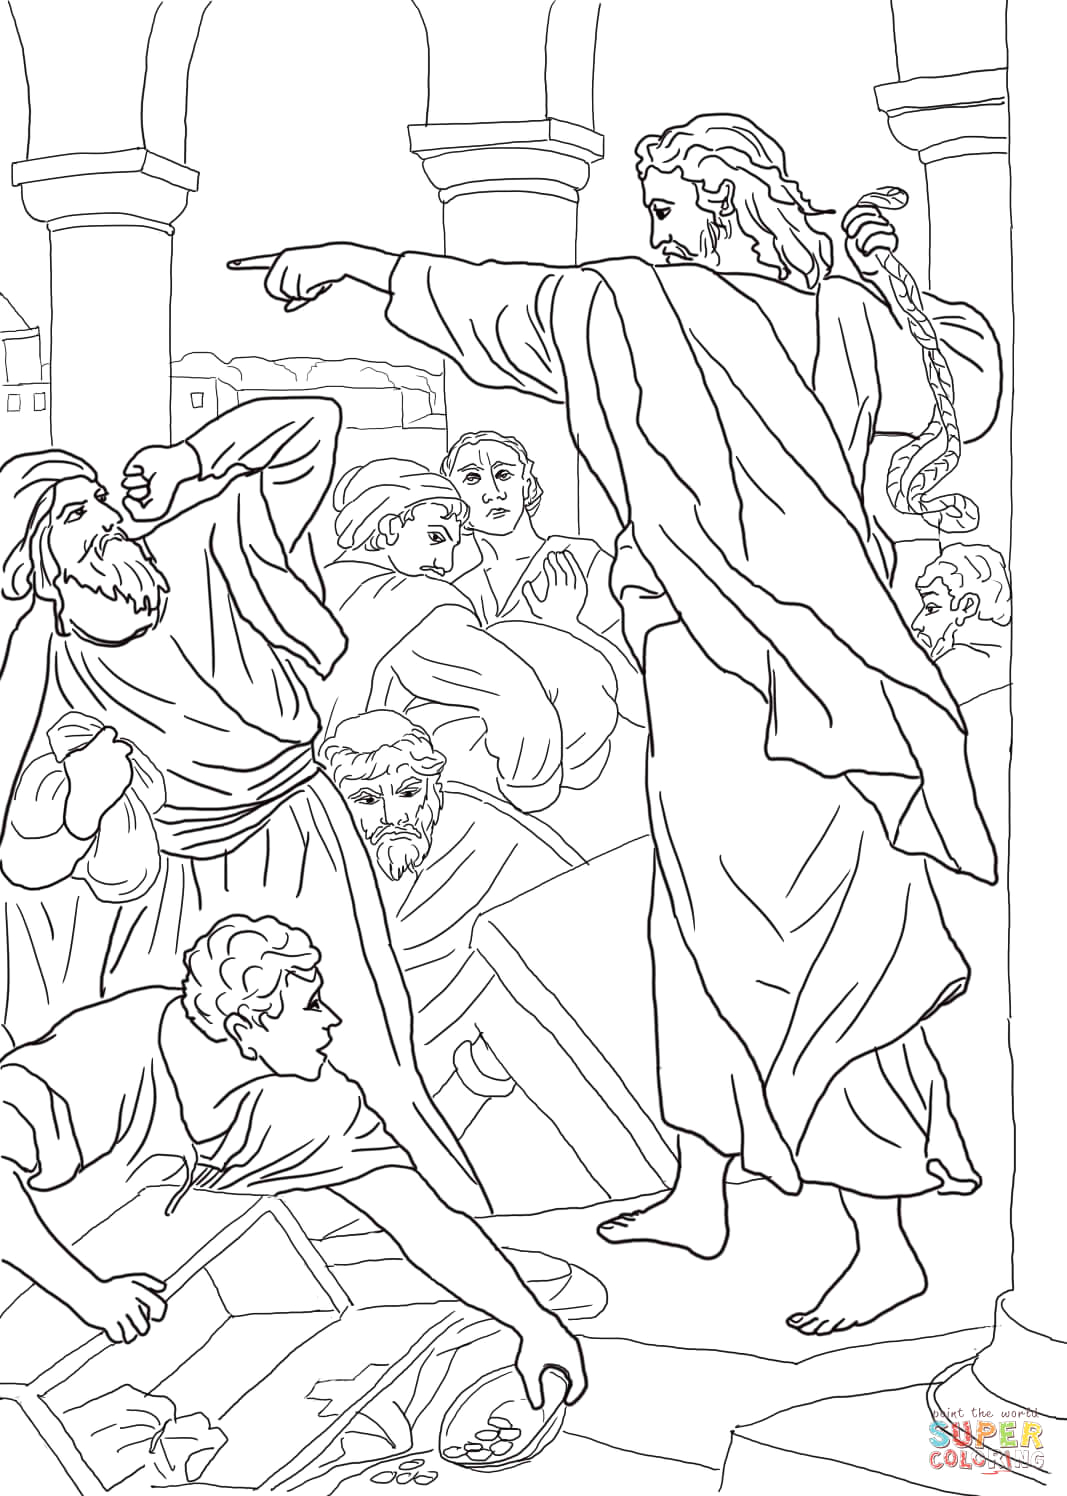 Jesus and the Money Changers Coloring Page Jesus Chasing the Money Changers From the Temple Coloring